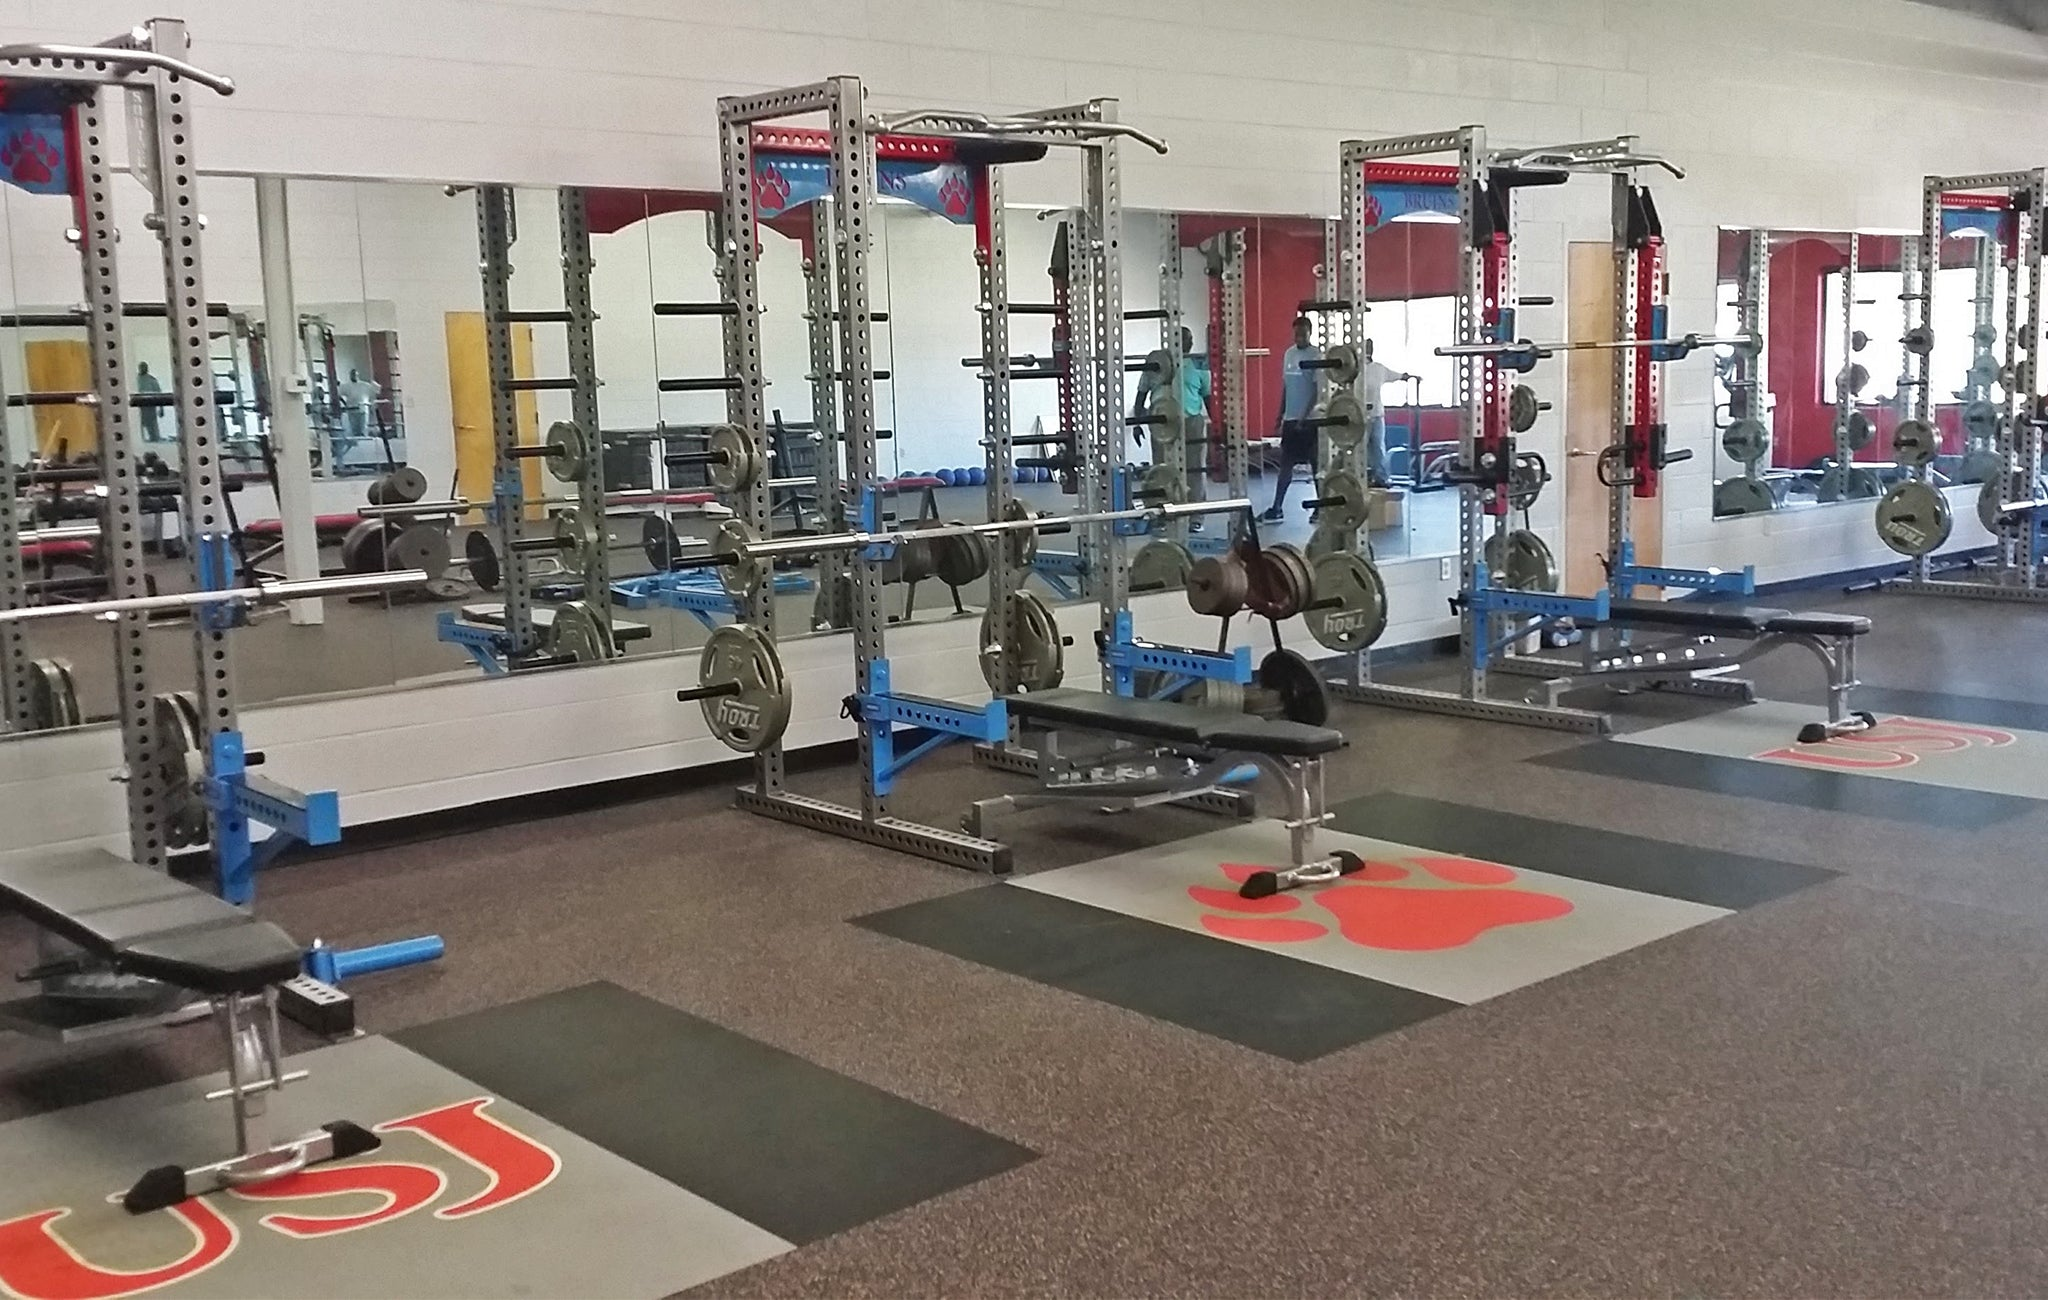 University School of Jackson strength training